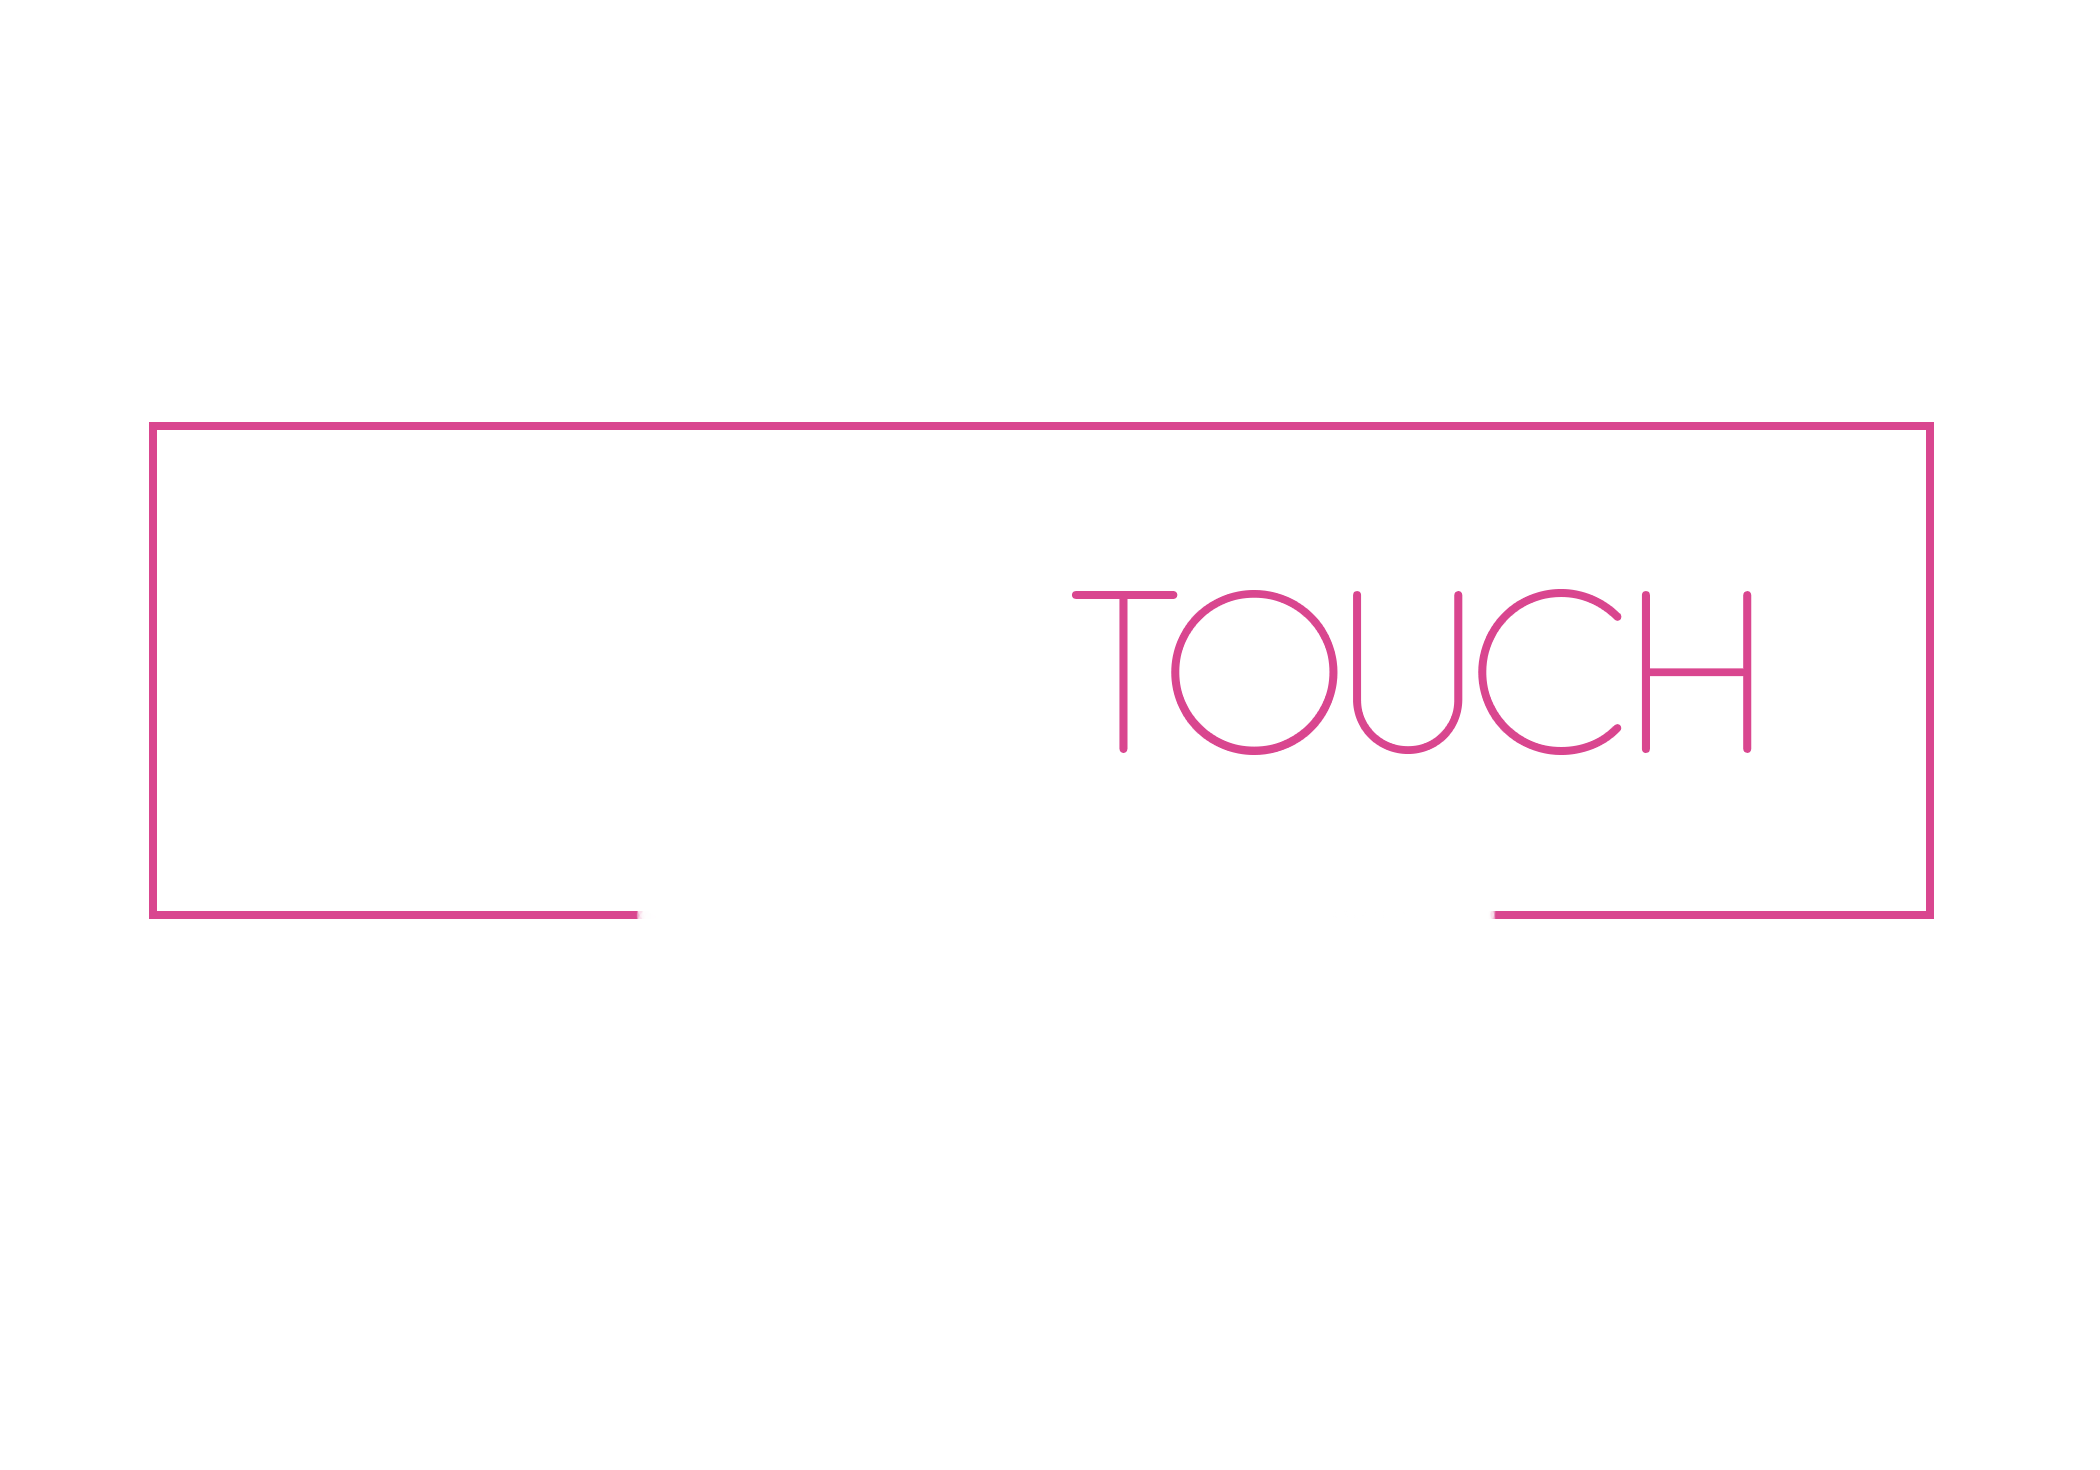 DivineTouchLogo_Black_Transparent